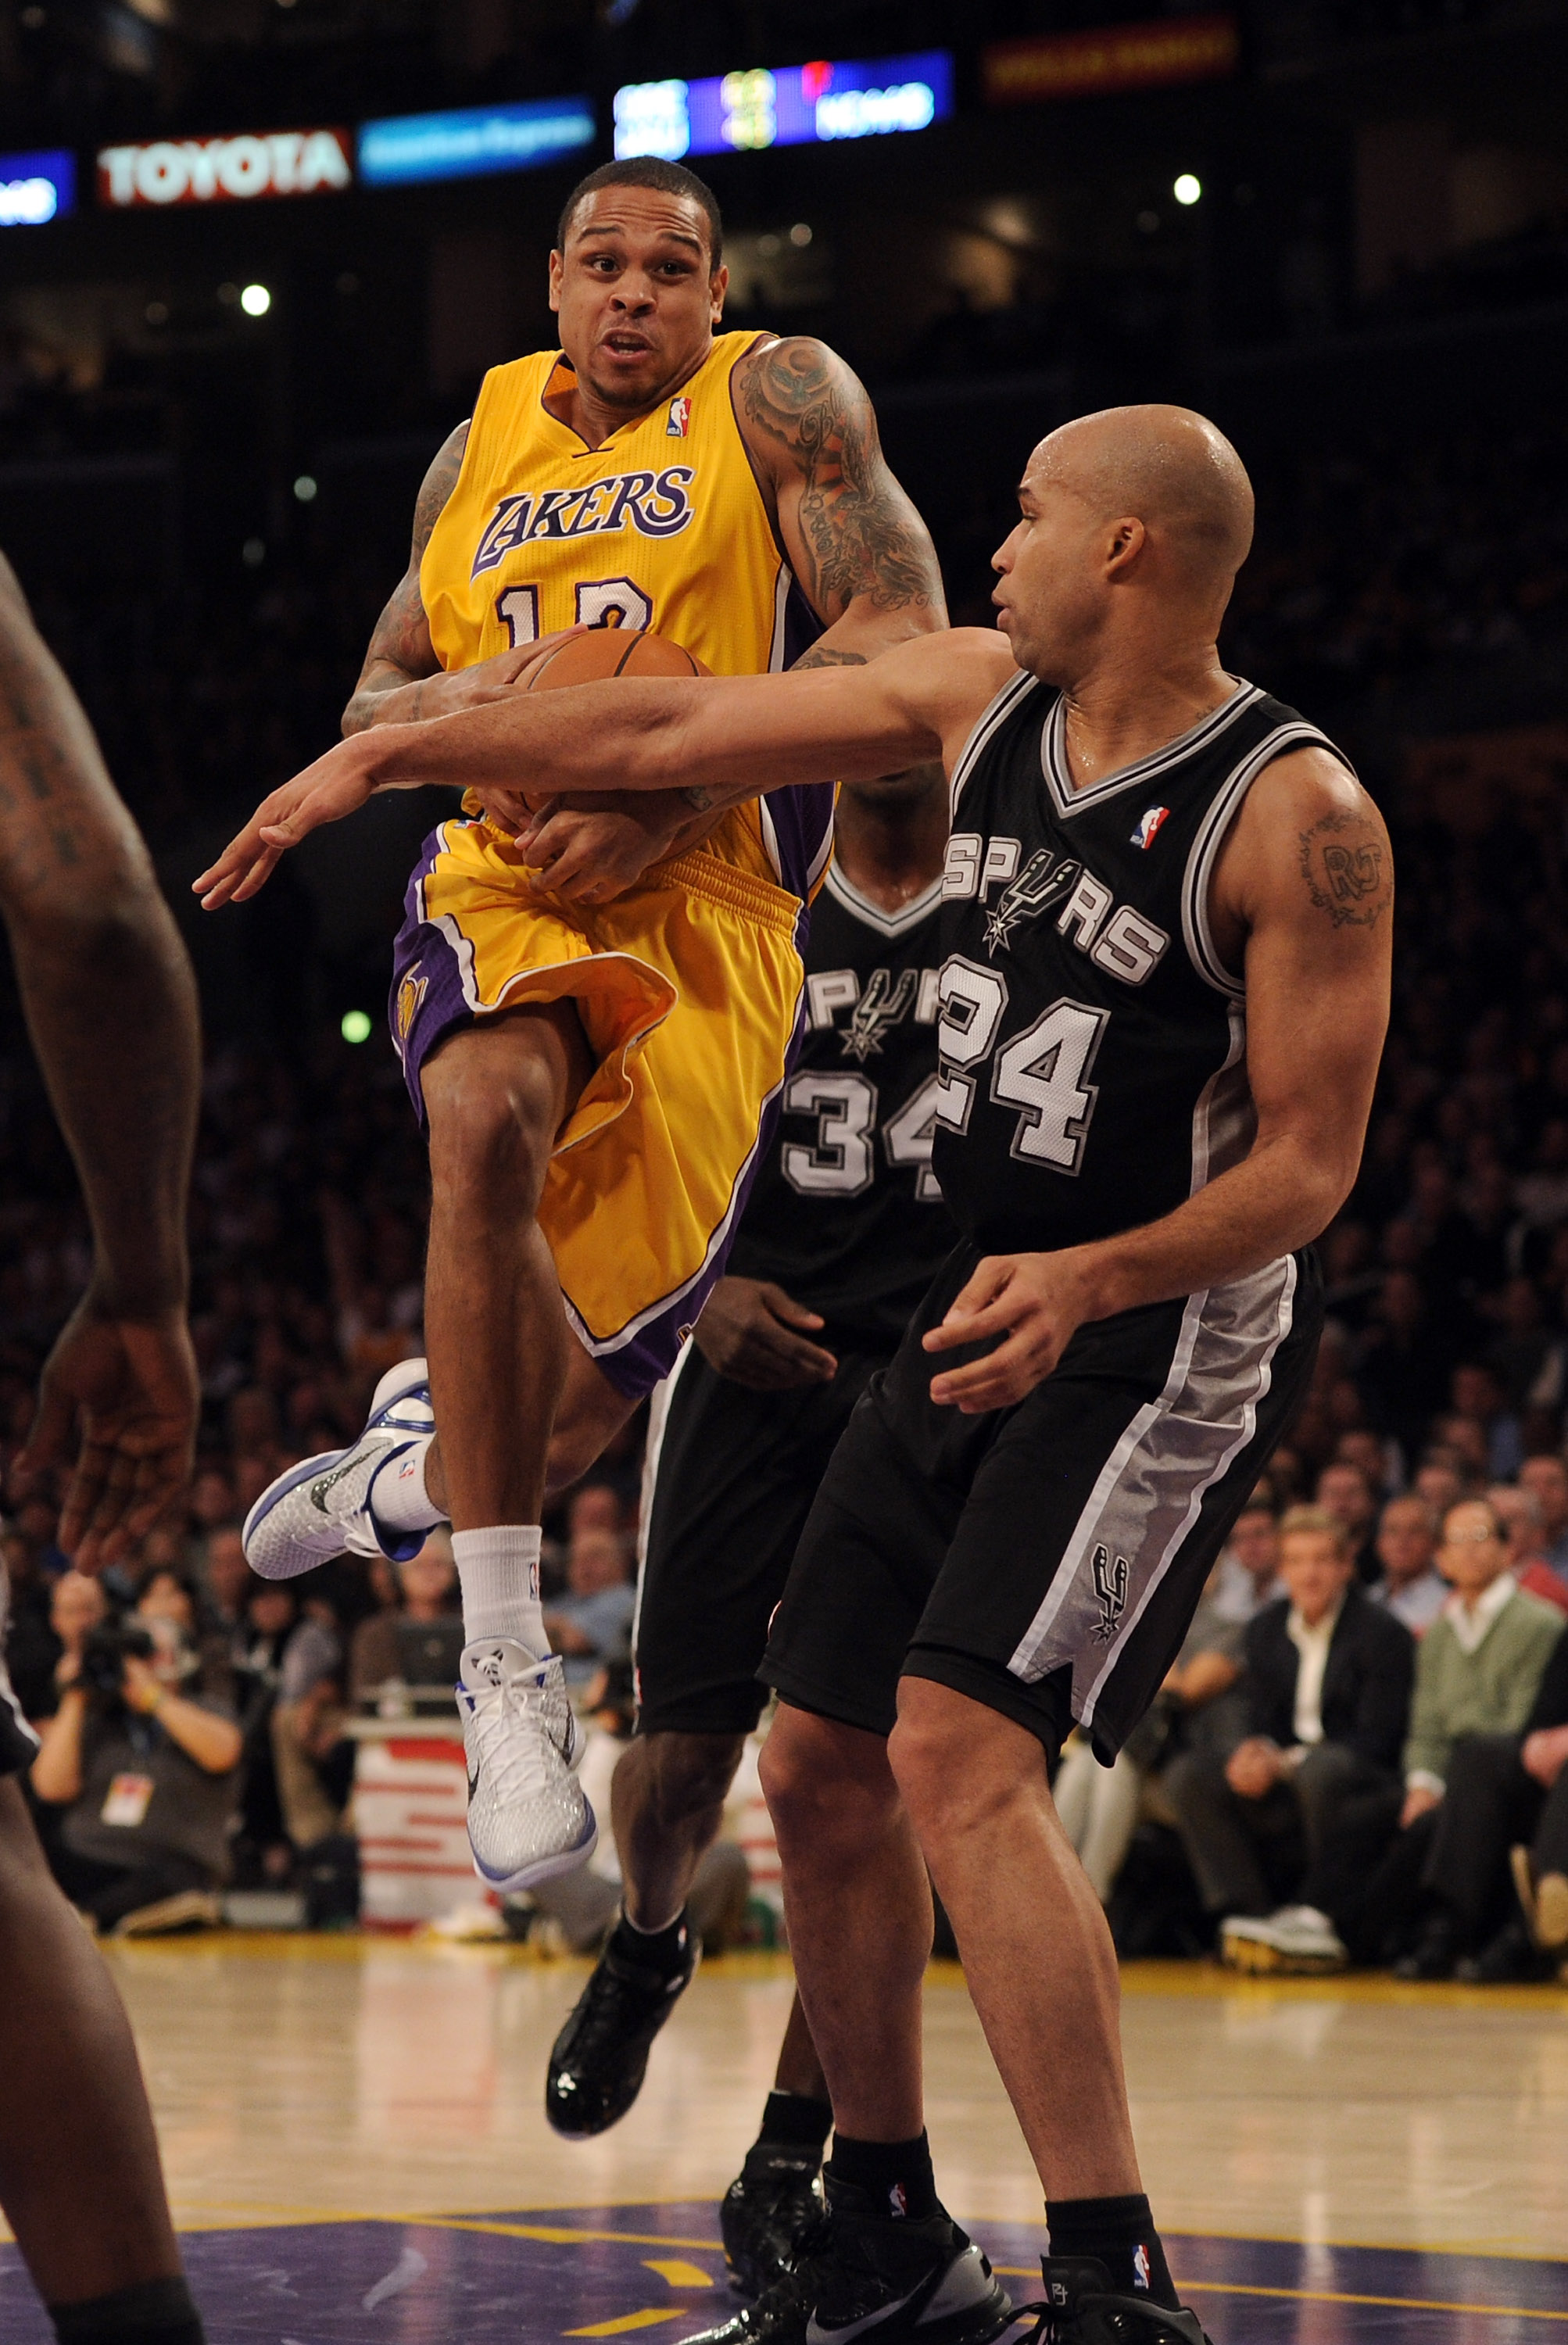 LOS ANGELES, CA - FEBRUARY 03:  Shannon Brown #12 of the Los Angeles Lakers tries to get a shot off in front of Richard Jeffferson #24 of the San Antonio Spurs at Staples Center on February 3, 2011 in Los Angeles, California.  NOTE TO USER: User expressly